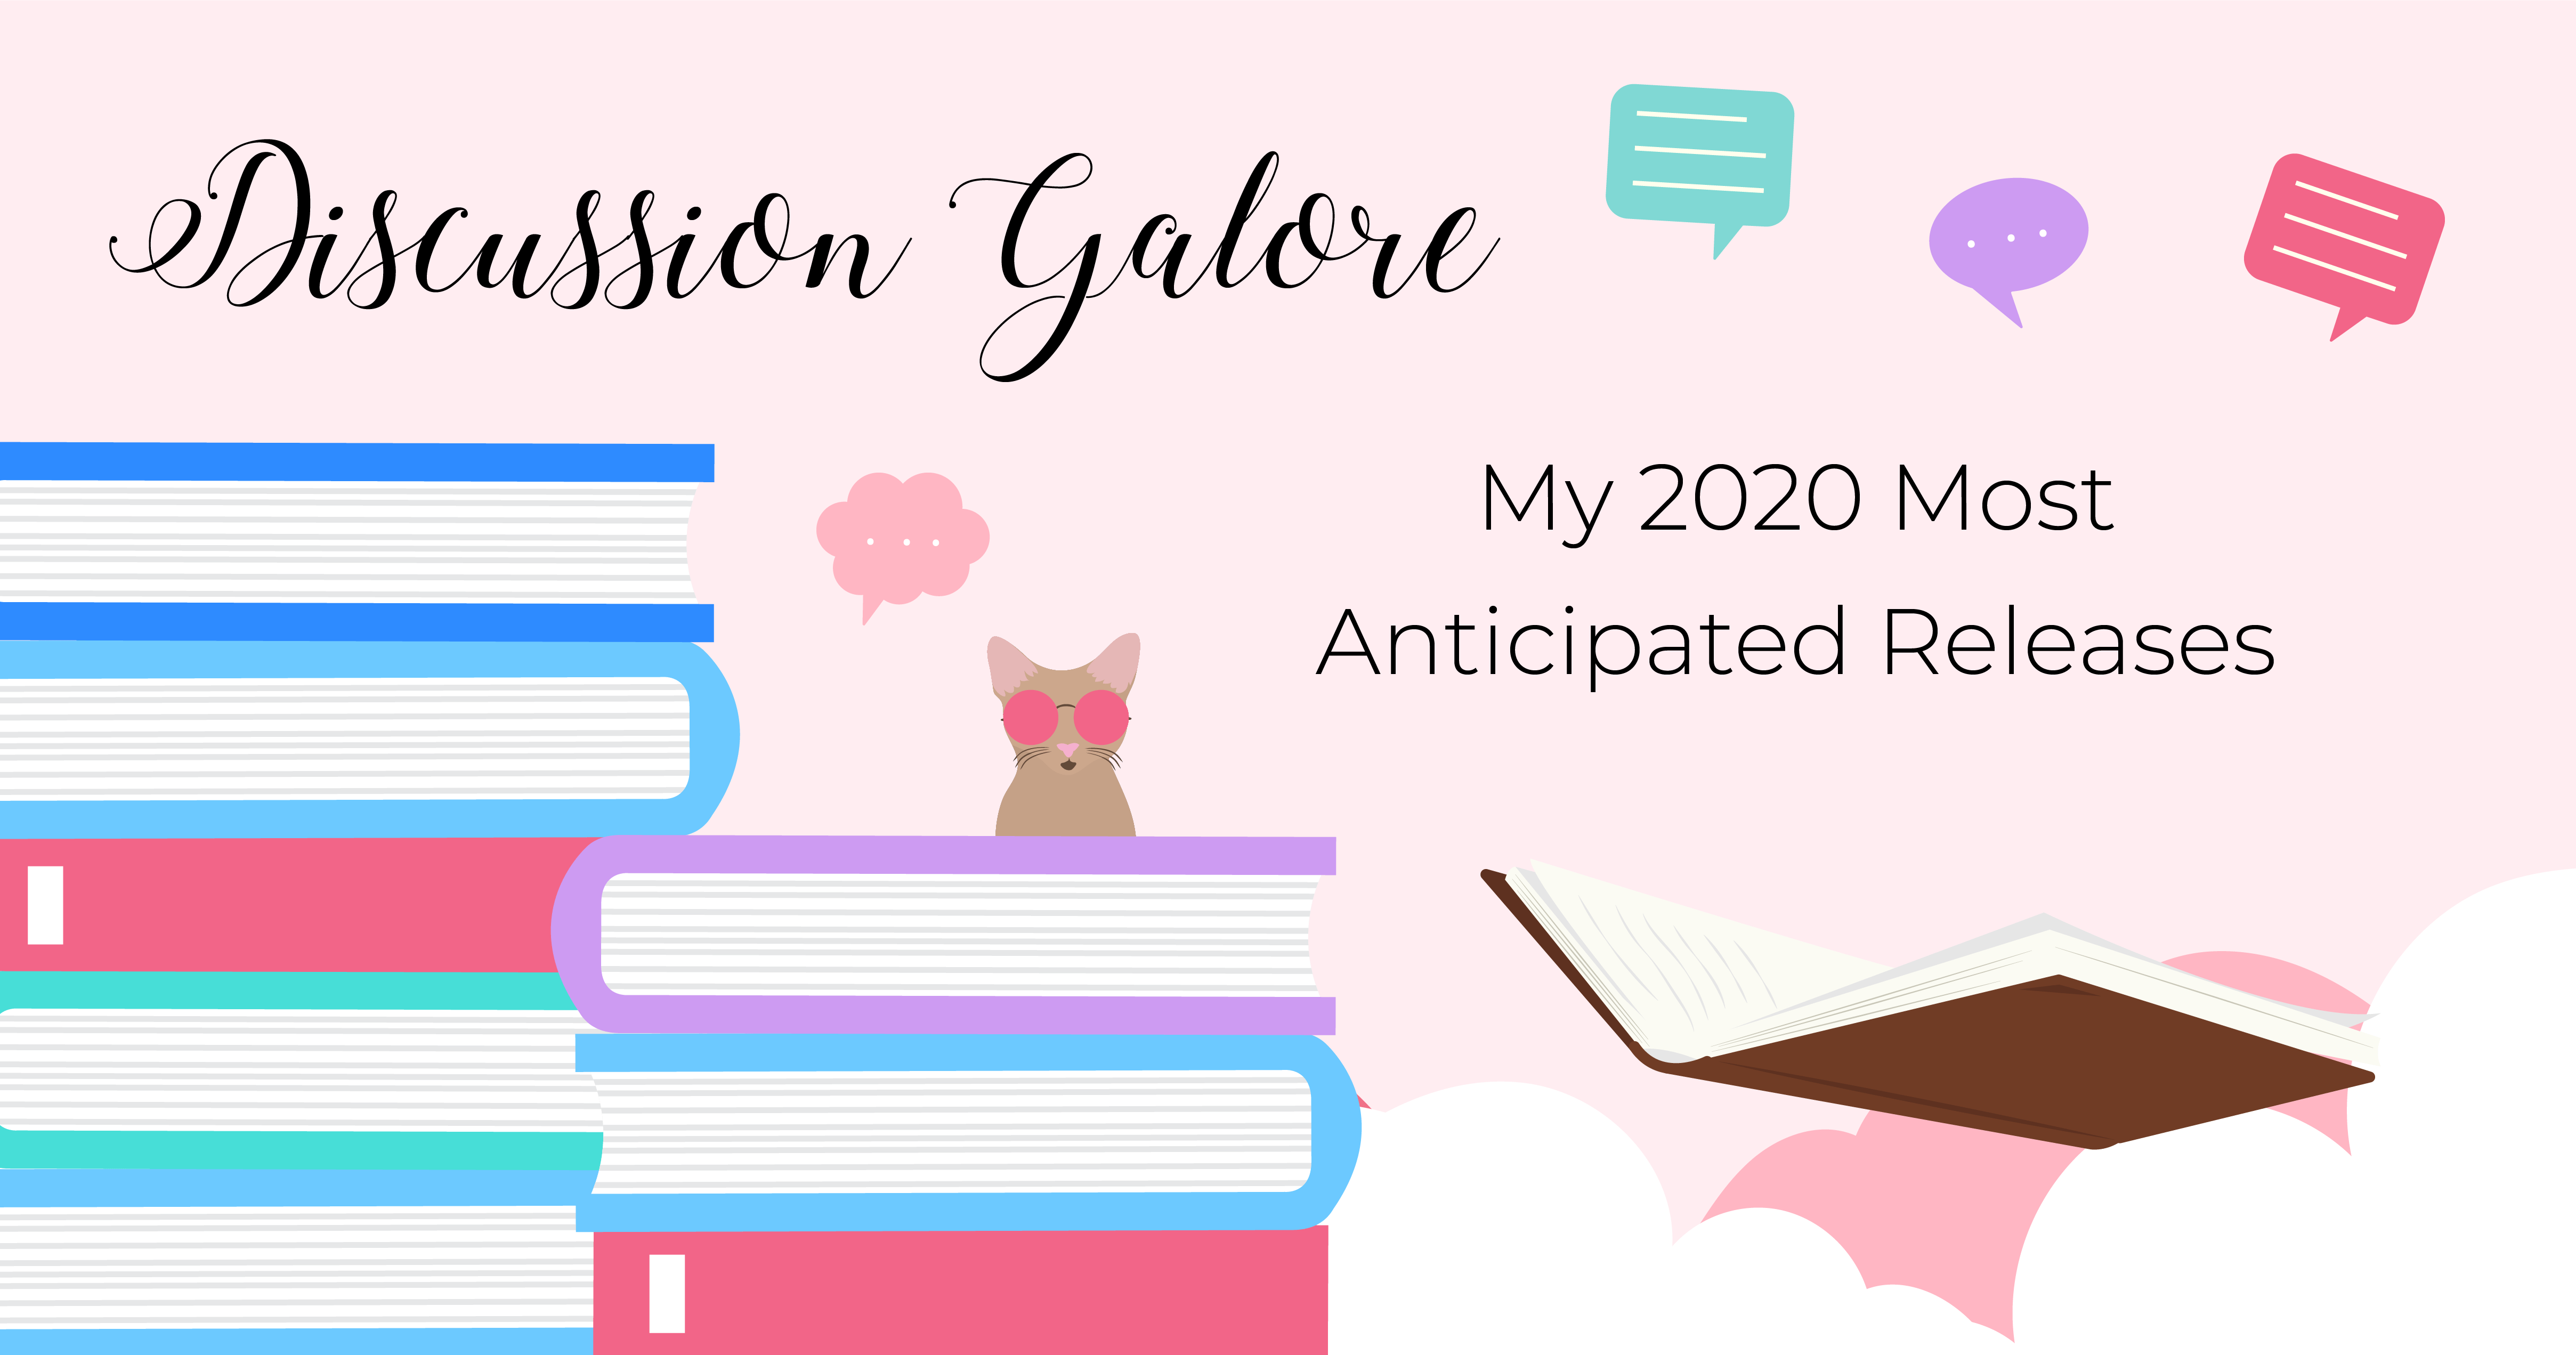 My 2020 Most Anticipated Releases